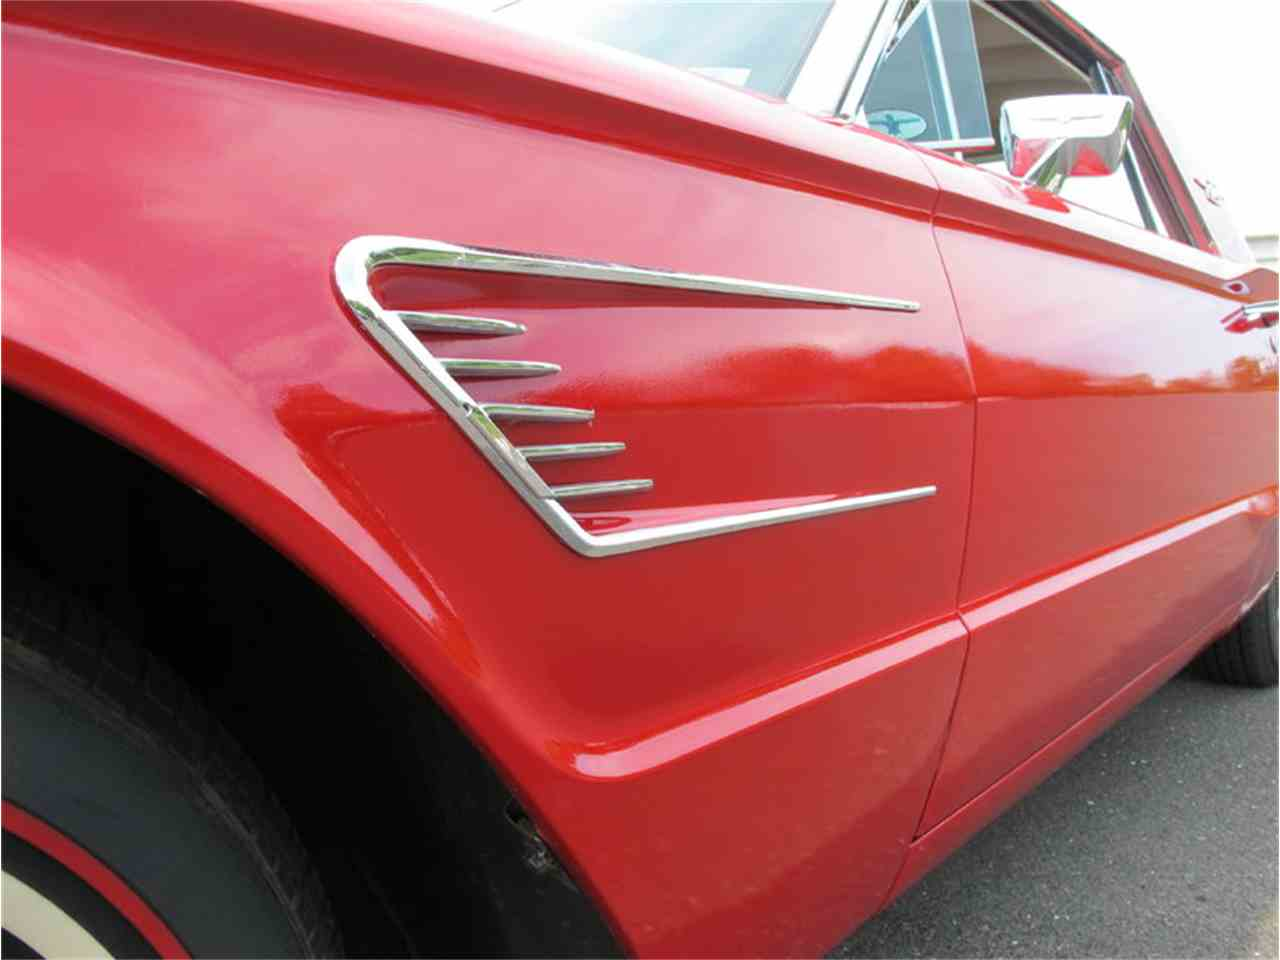 Large Picture of 1965 Thunderbird - $10,700.00 Offered by Old Forge Motorcars - LULR